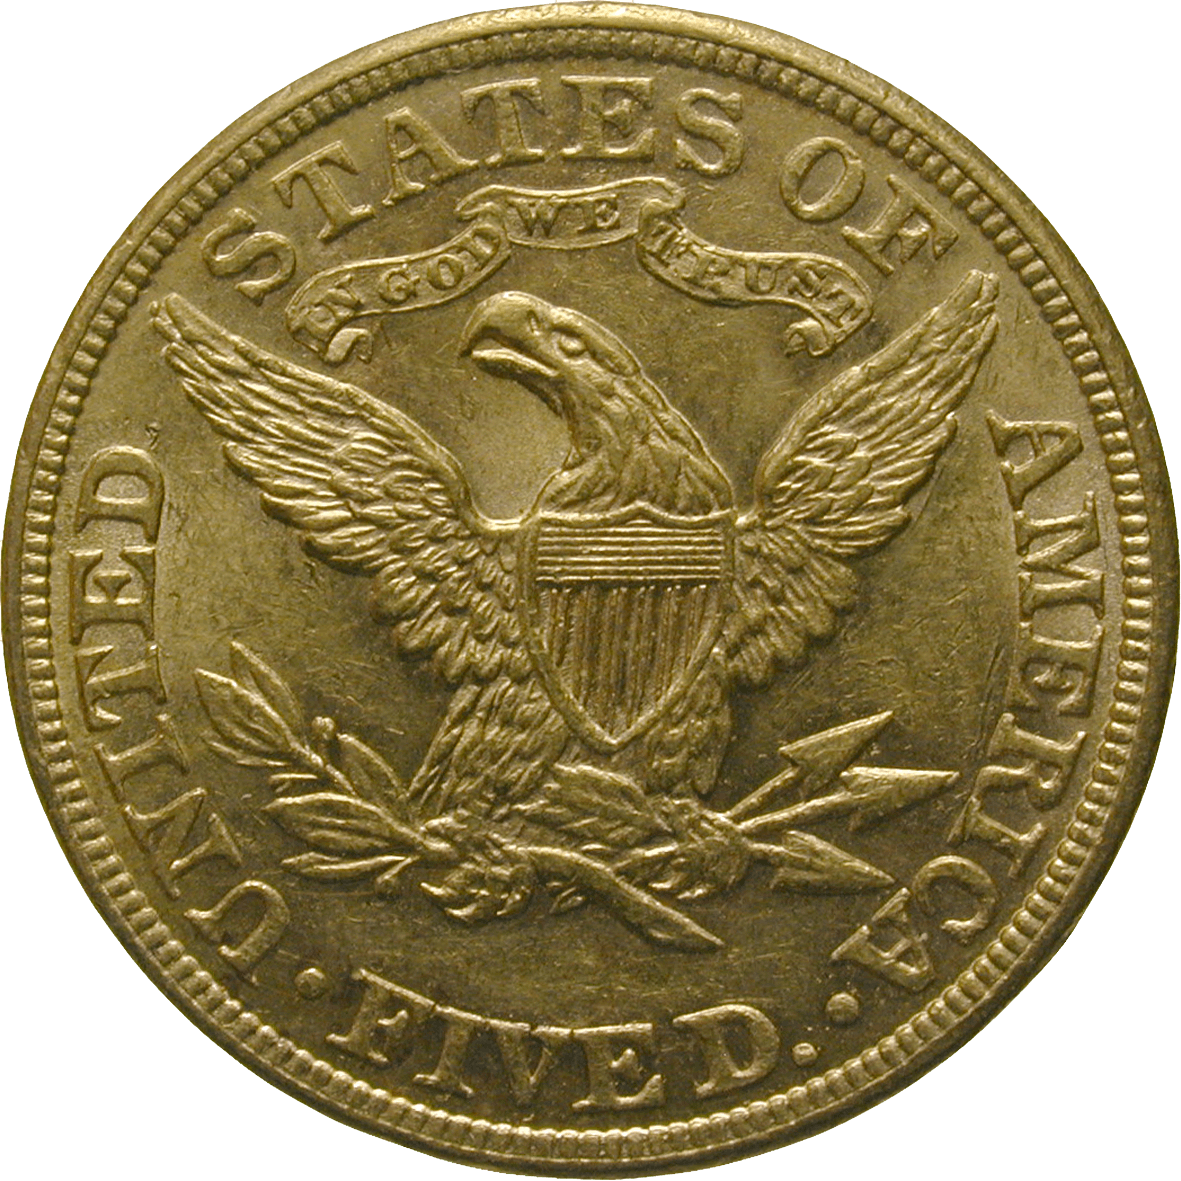 United States of America, 5 Dollars 1889 (reverse)